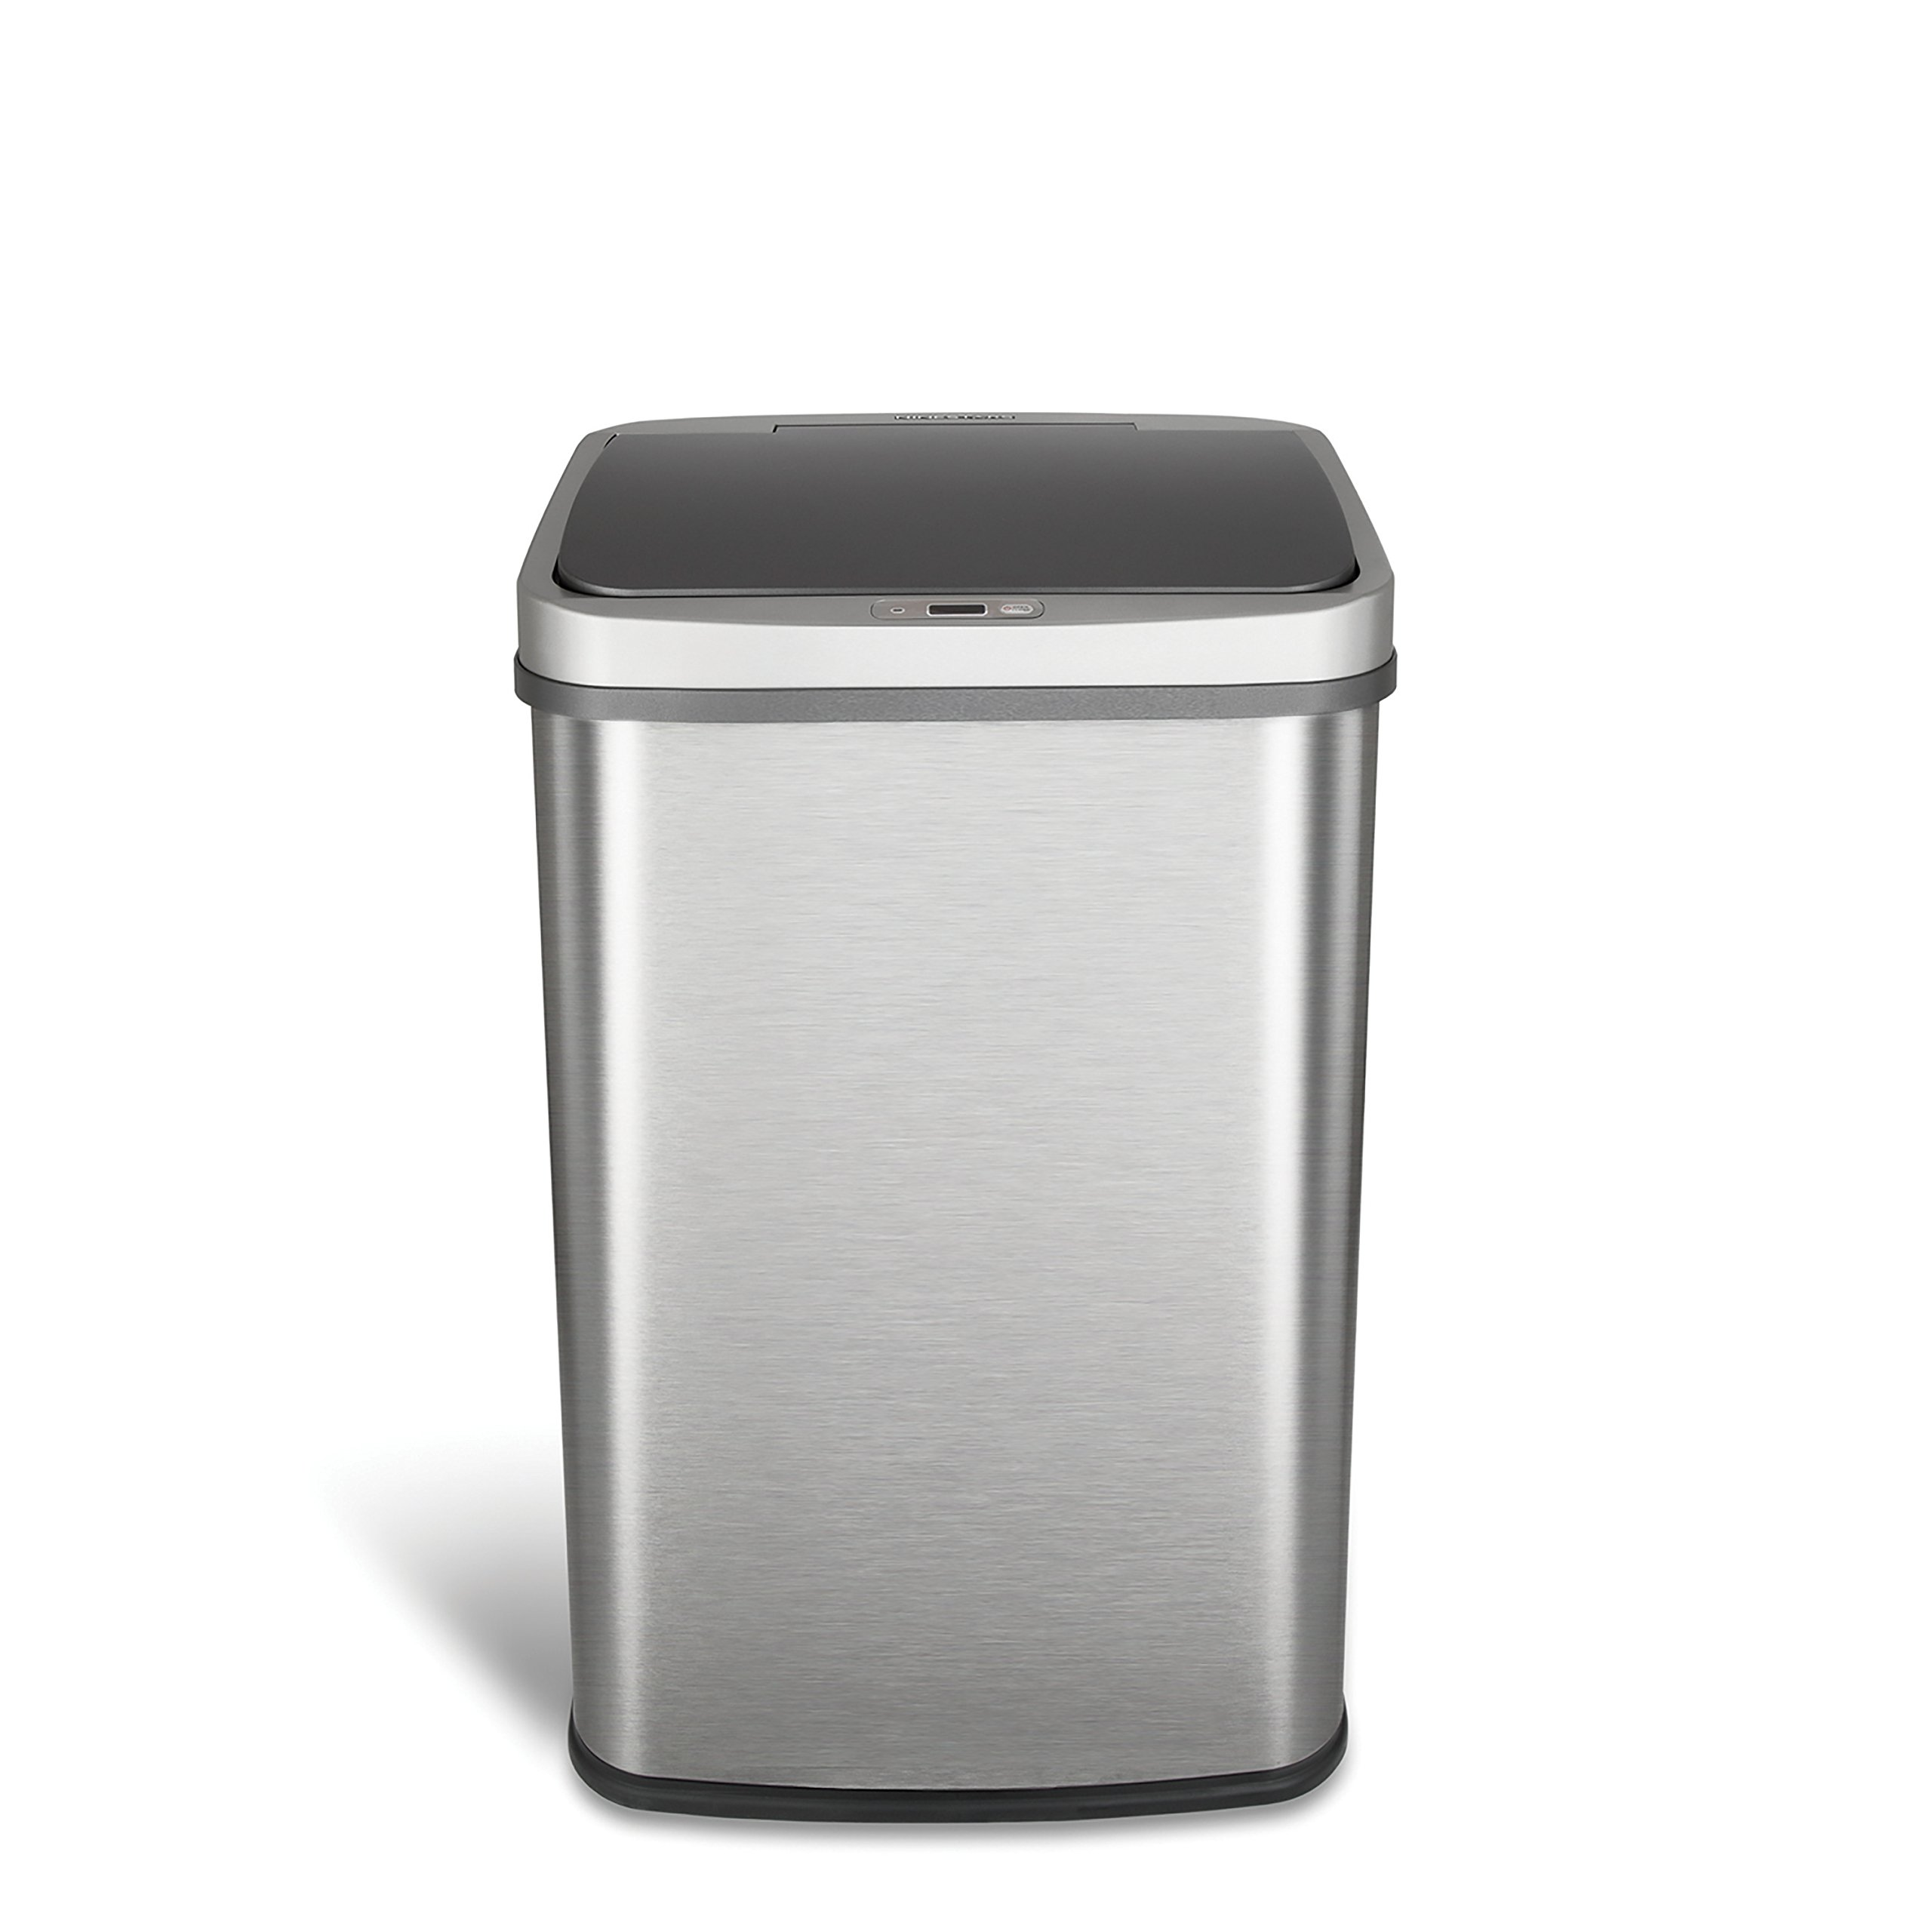 Ninestars DZT-50-28BR Automatic Touchless Infrared Motion Sensor Trash Can, 13 Gal 50L, Stainless Steel Base (Rectangular, Brush Silver Lid)